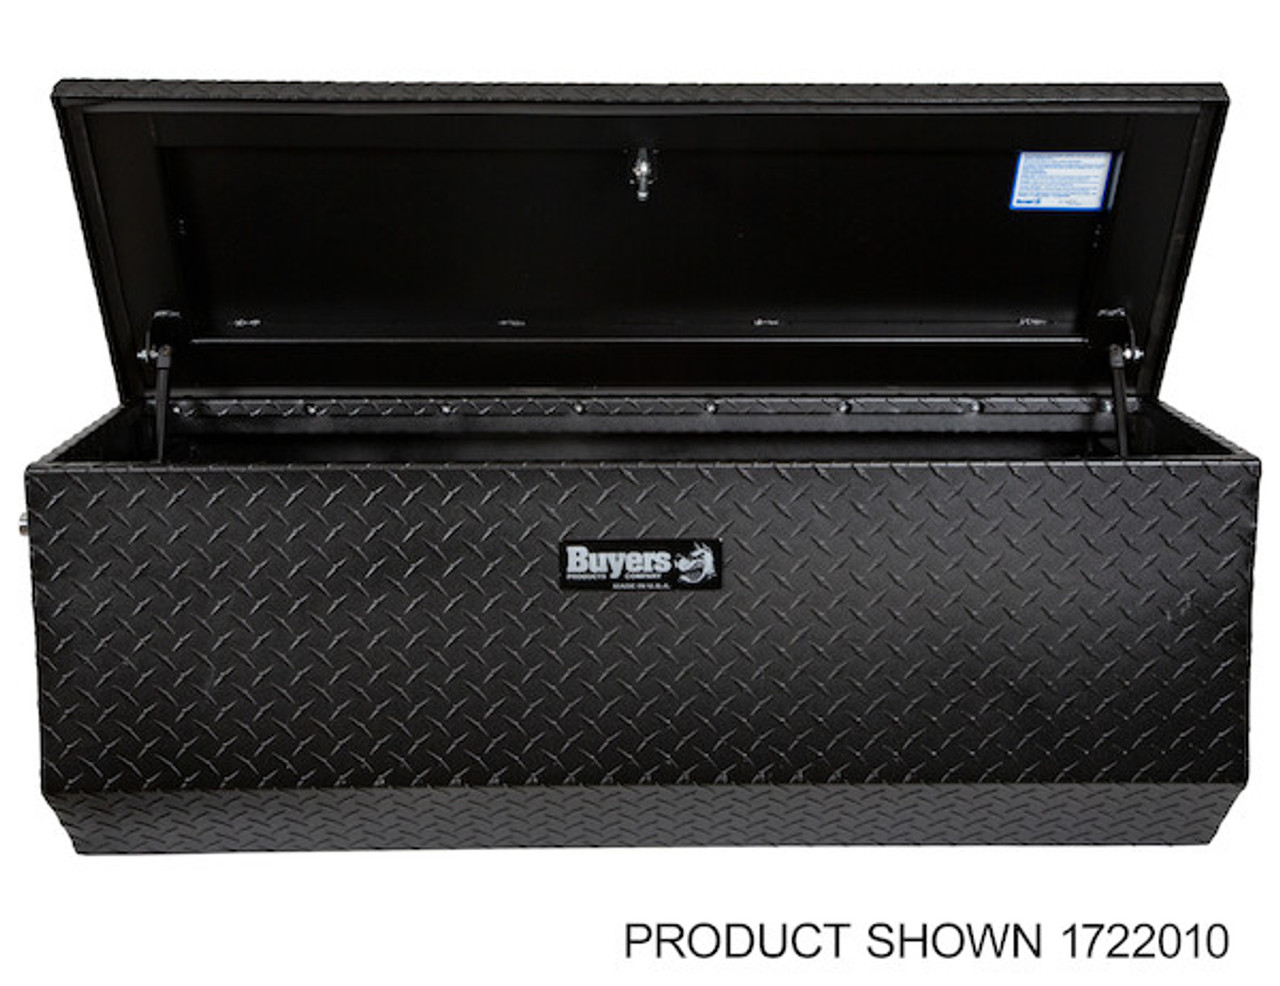 "1722010 BUYERS PRODUCTS TEXTURED MATTE BLACK DIAMOND TREAD ALUMINUM ALL-PURPOSE TOOLBOX WITH ANGLED BASE 19""HX20""DX47""W Picture # 6"